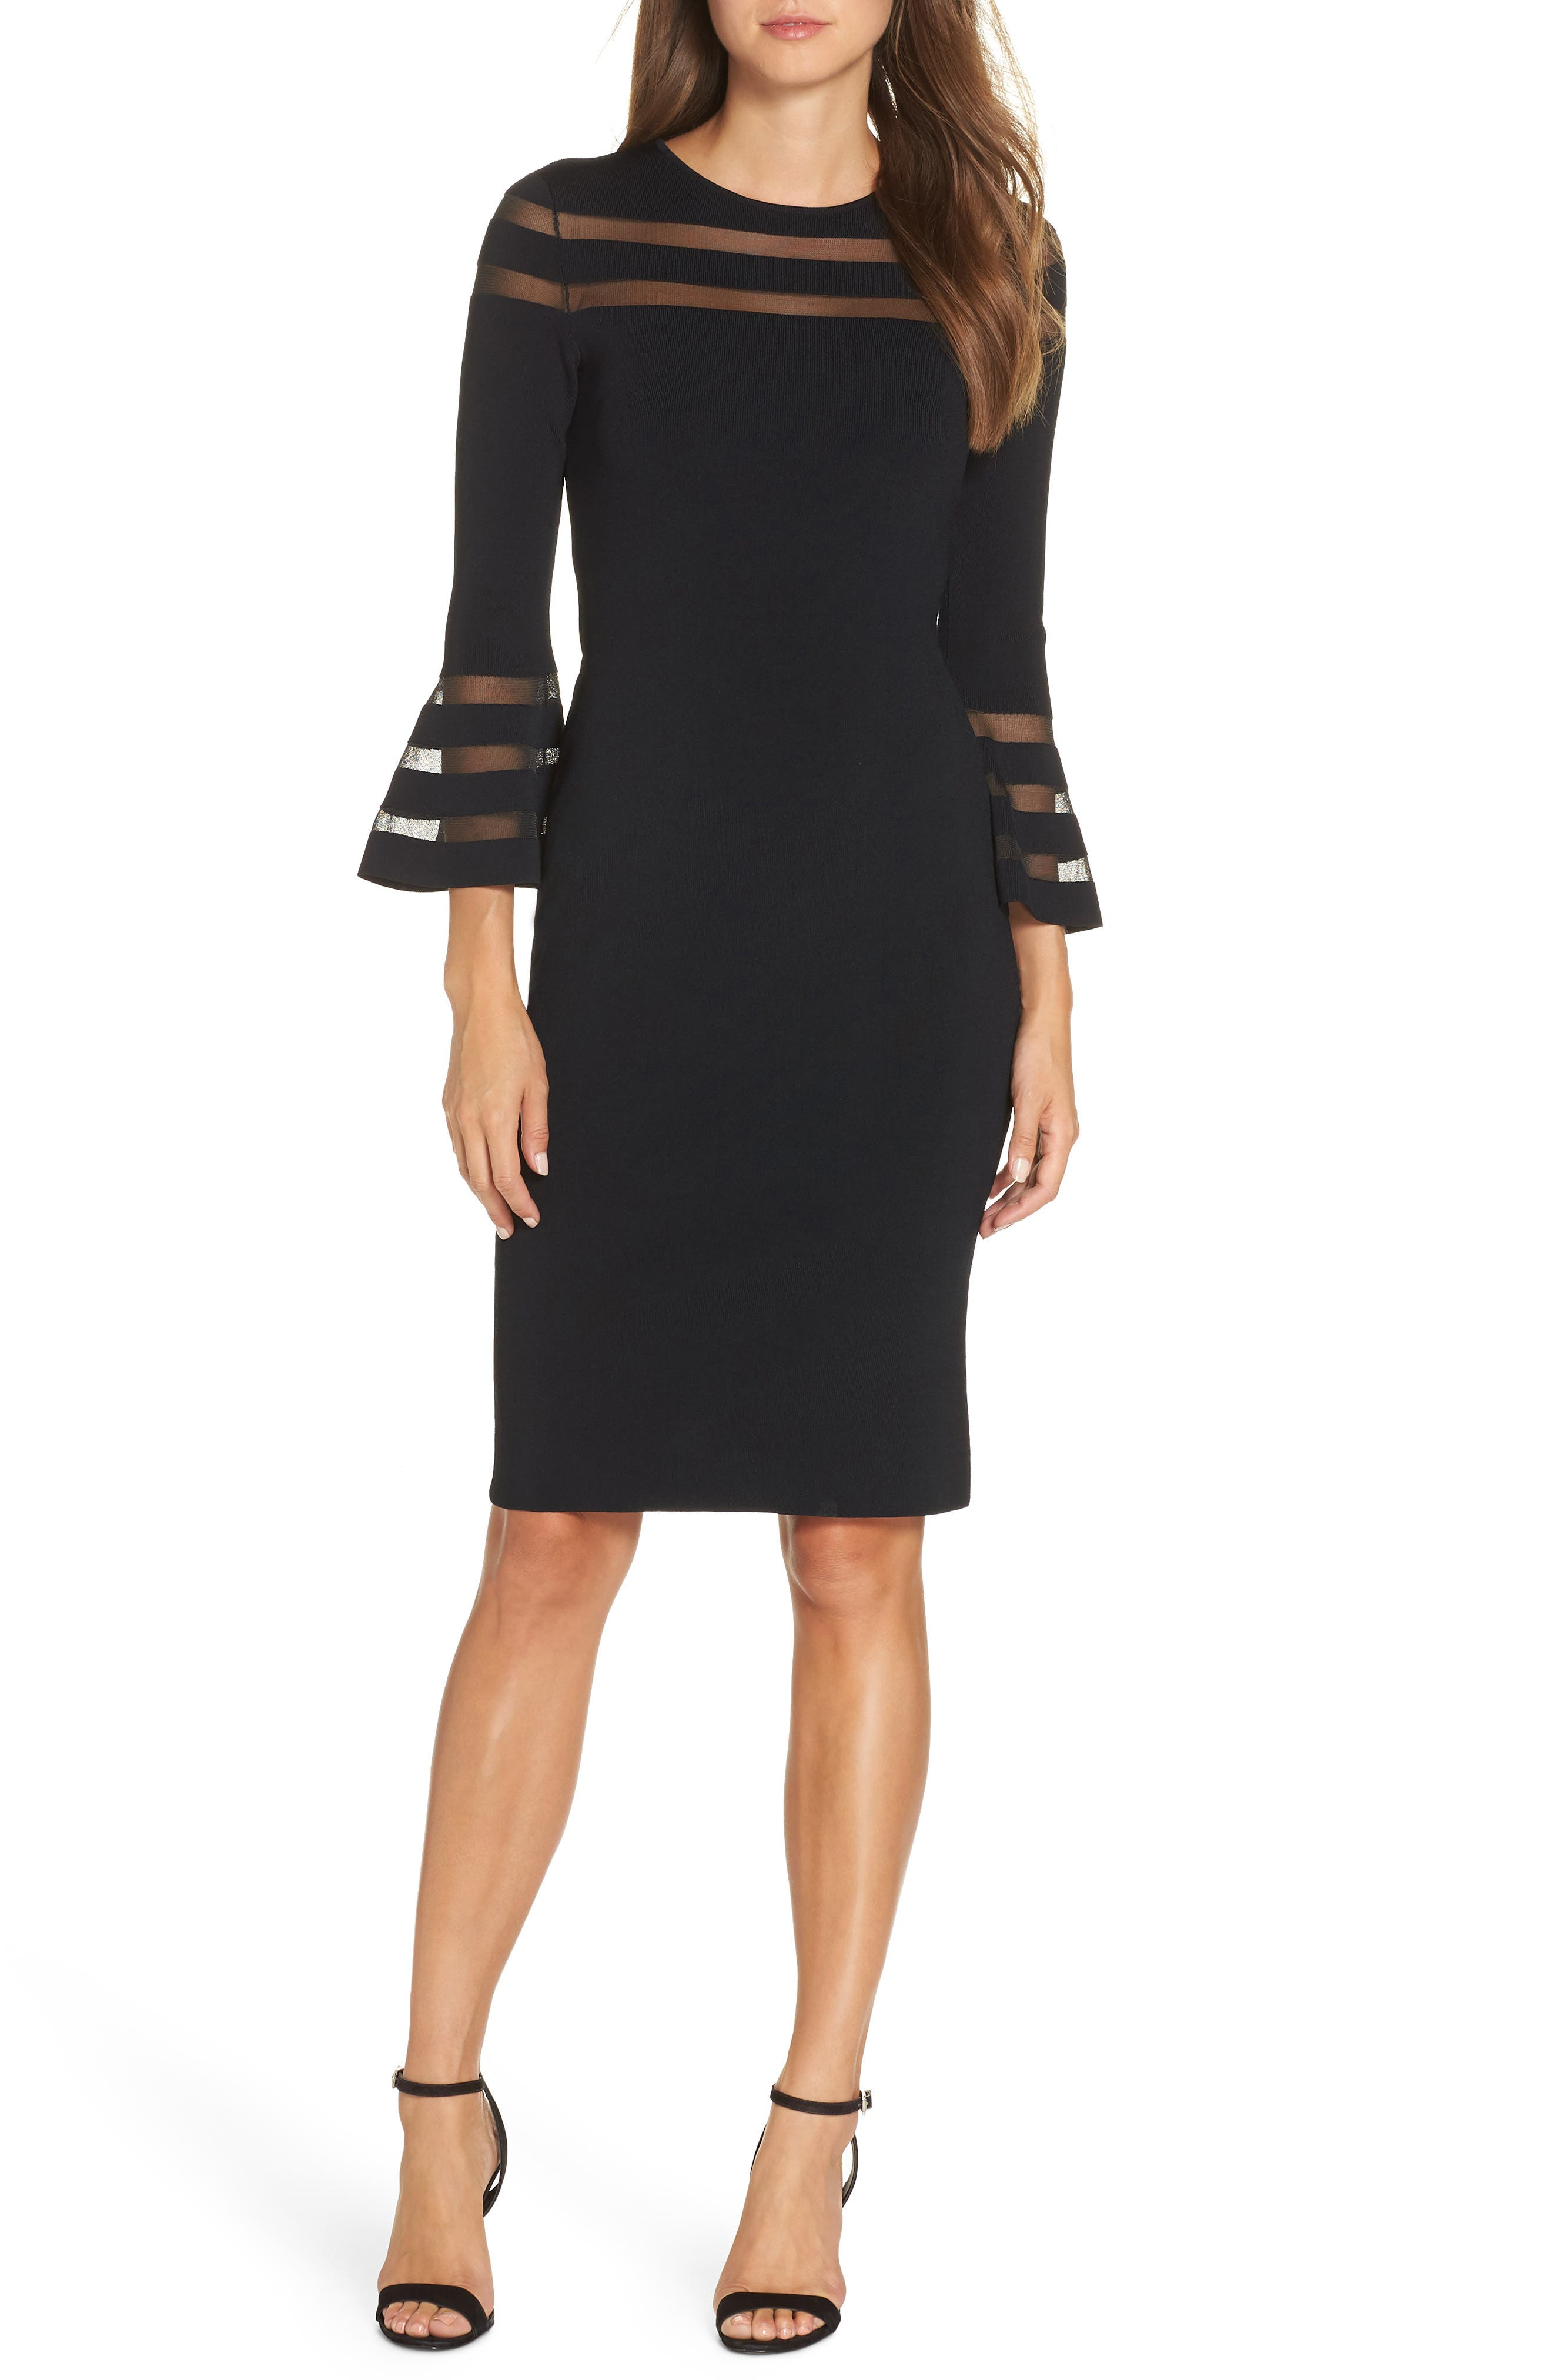 ELIZA J, Mesh Stripe Sweater Dress, Main thumbnail 1, color, BLACK